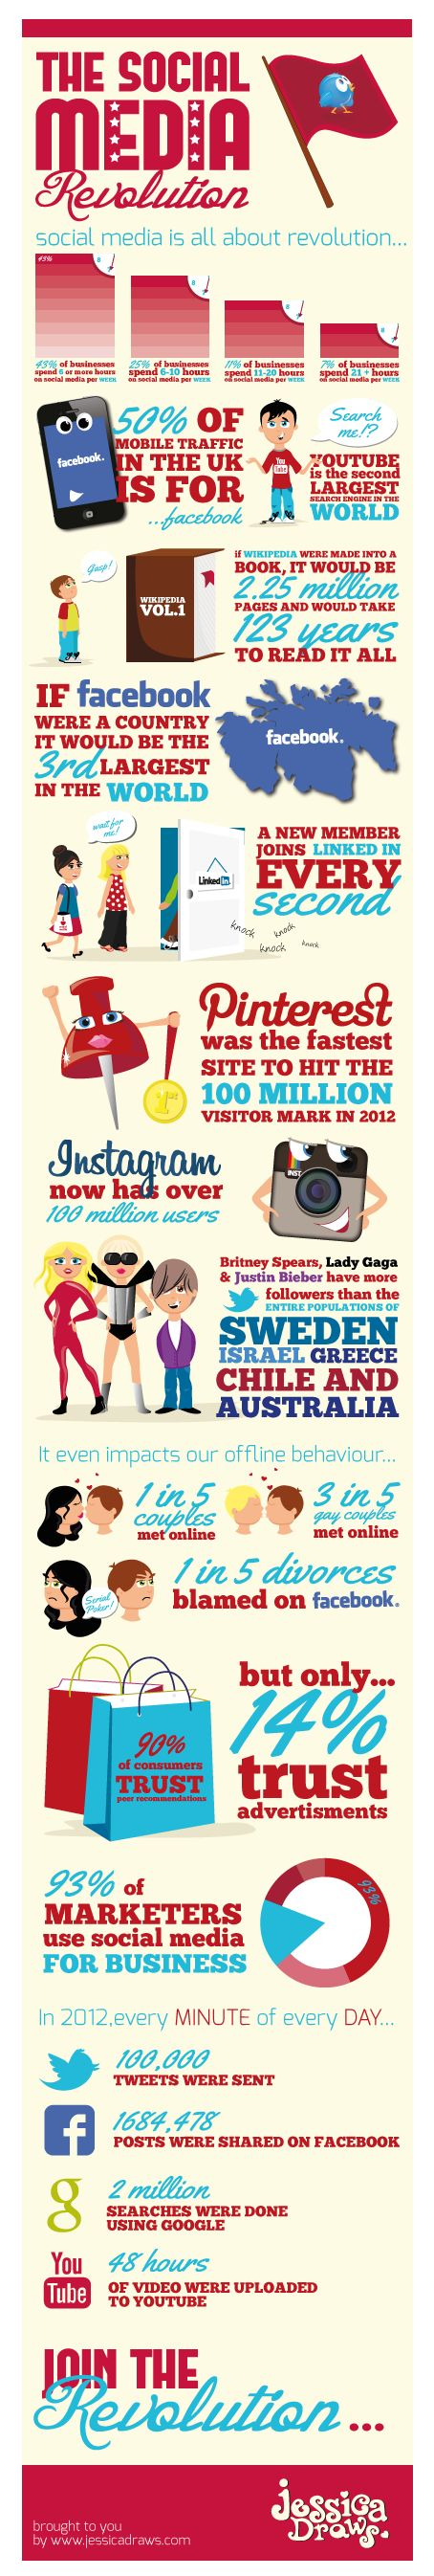 Infographic-The Social Media Revolution